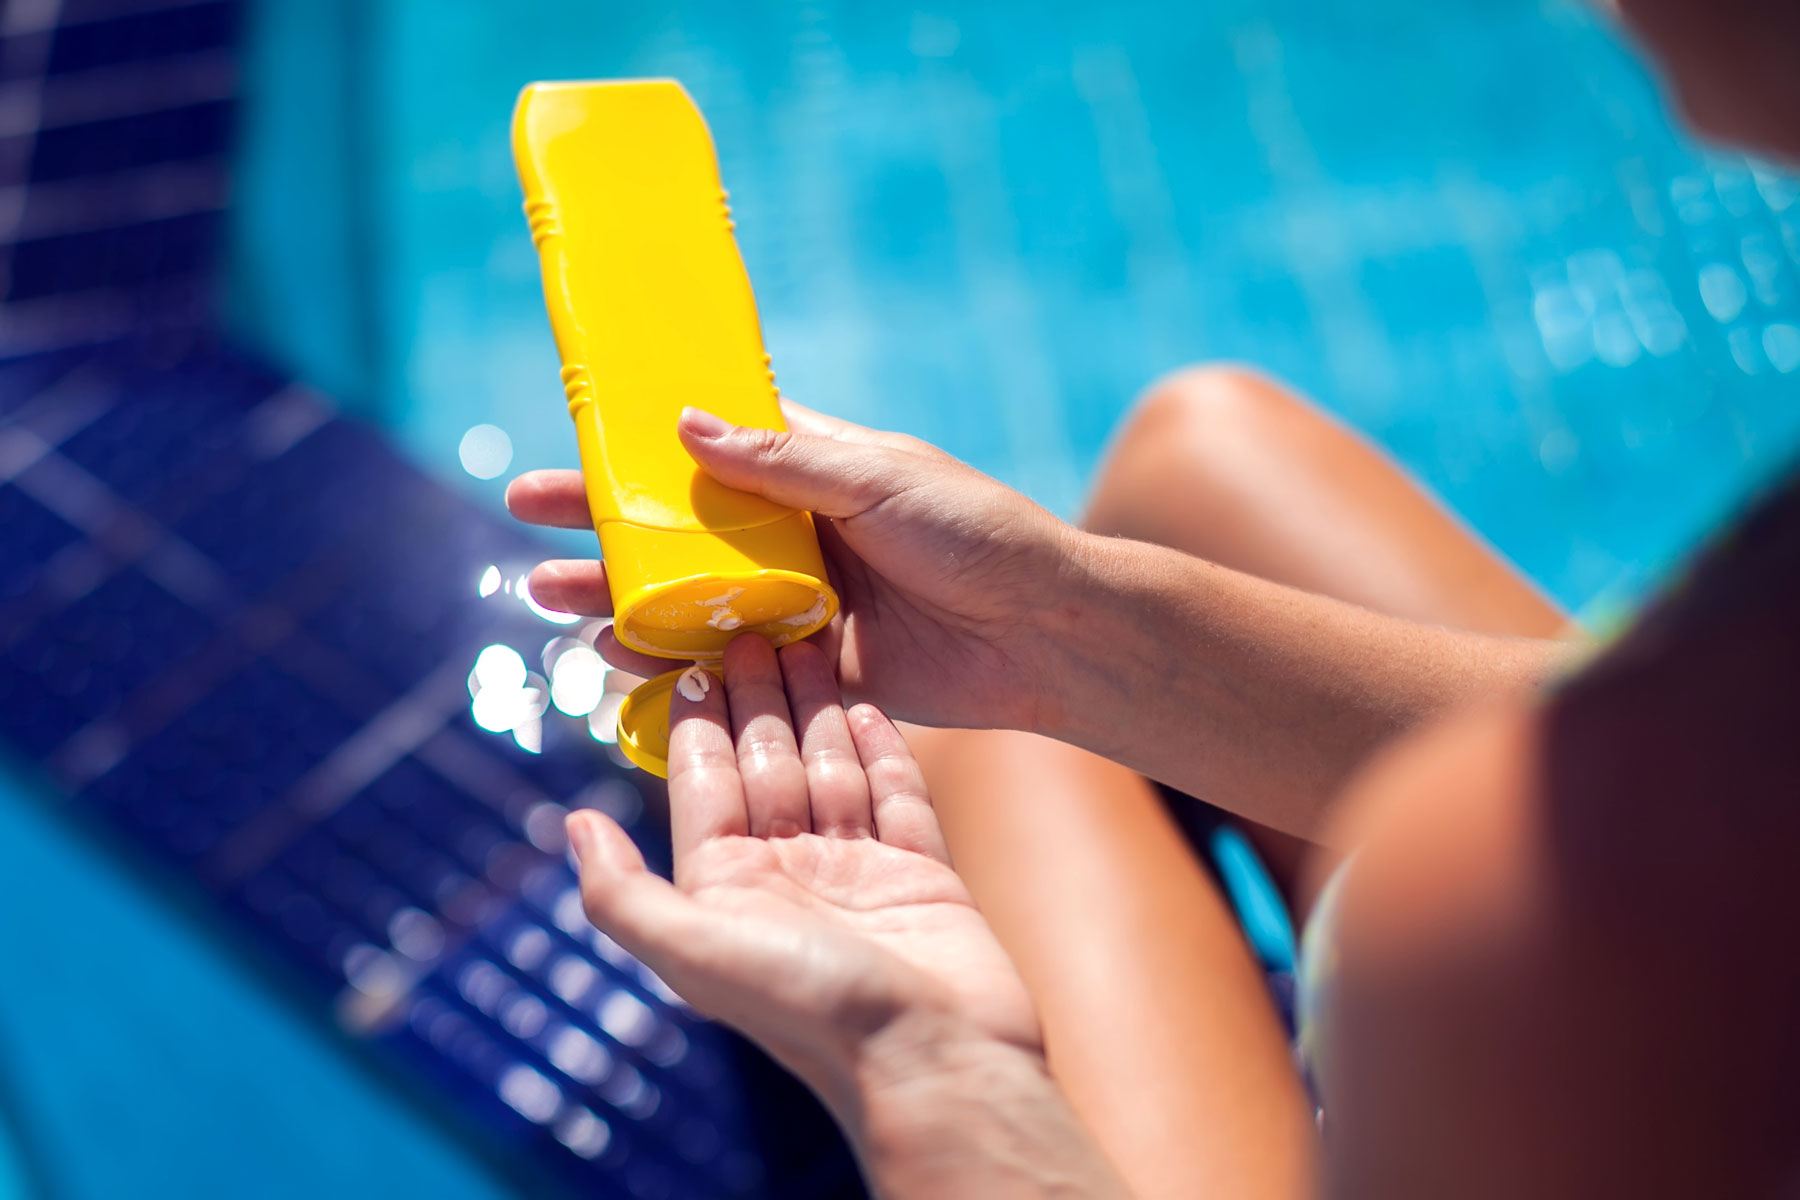 Sunscreen expiration: when to throw sunscreen away and how long does sunscreen last (sunscreen bottle)